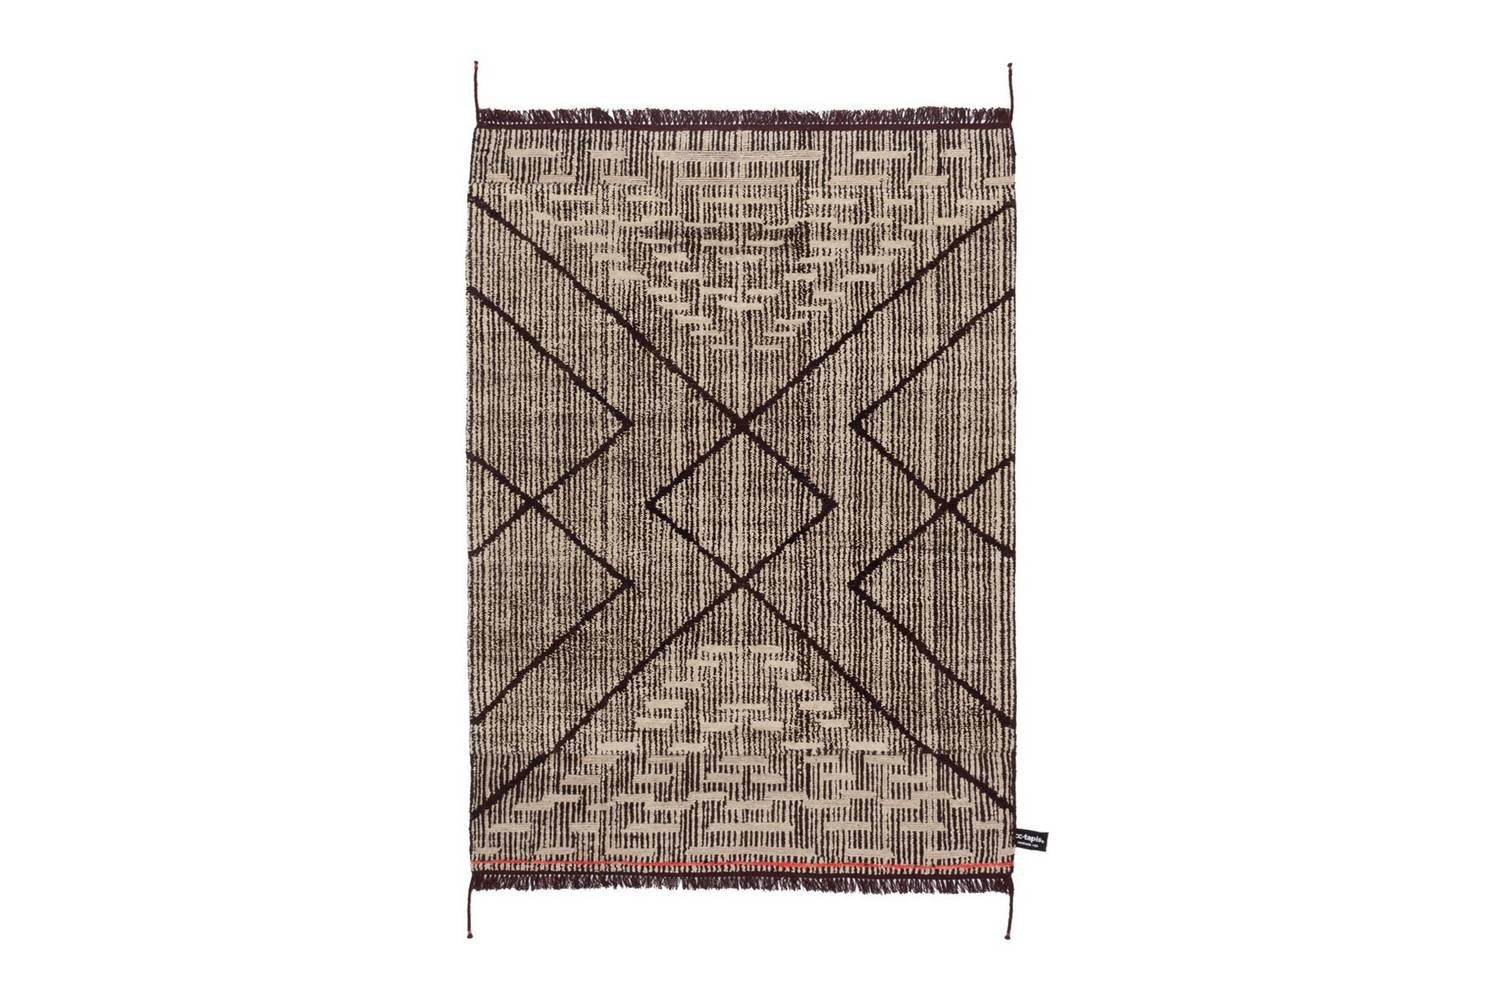 Primitive Weave 2 Rug by Chiara Andreatti for CC-Tapis